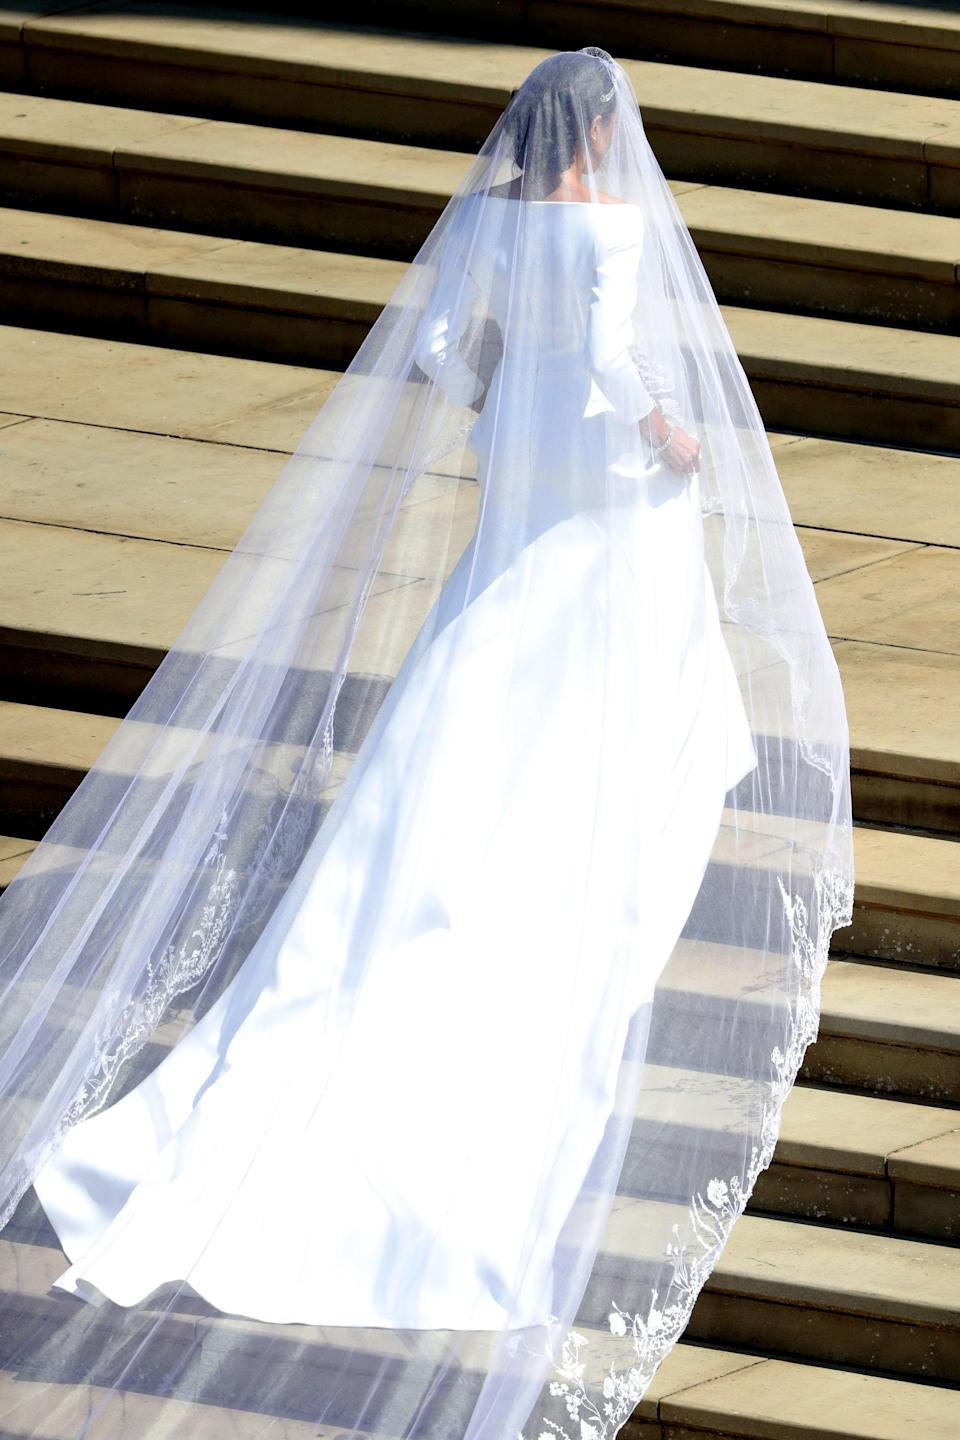 <p>Meghan Markle arrived at St George's Chapel at Windsor Castle for her wedding to Prince Harry wearing a custom dress by Givenchy's artistic director Clare Waight Keller. Boasting a boat neckline, cropped sleeves and a five-foot veil, the dress has been lauded a masterpiece. <em>[Photo: Getty]</em> </p>